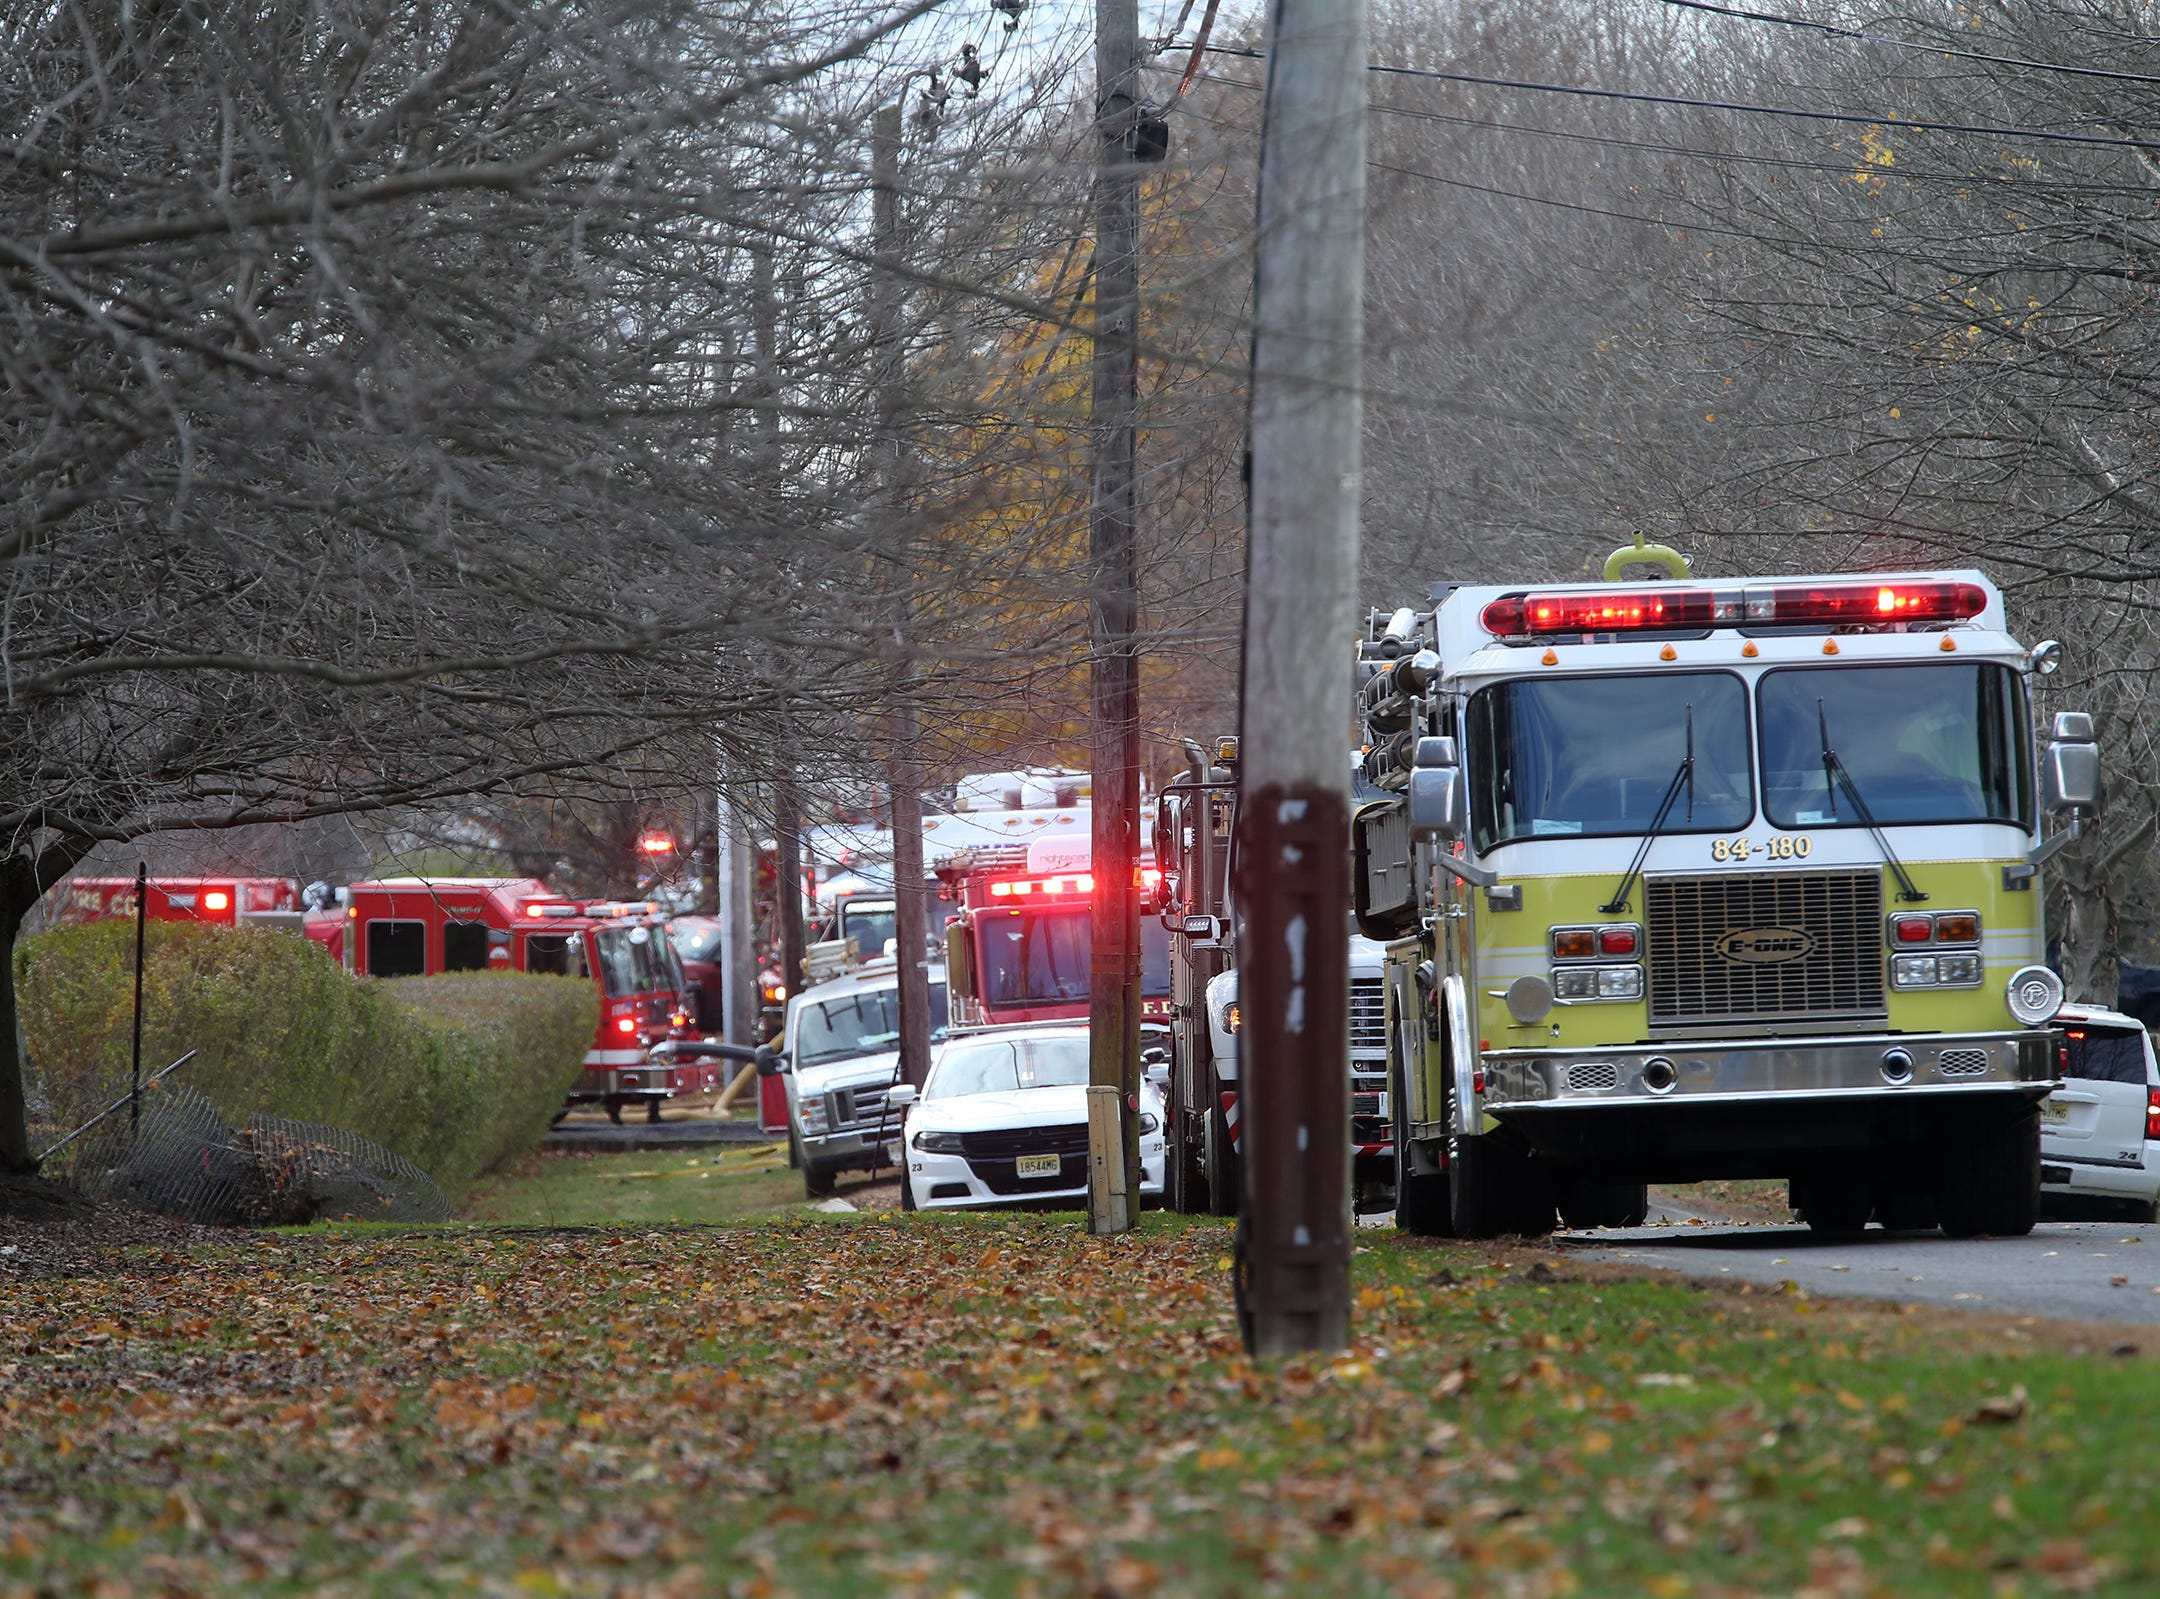 Scene of a multiple fatal fire at 15 Willow Brook Road in Colts Neck, NJ Tuesday November 20, 2018.